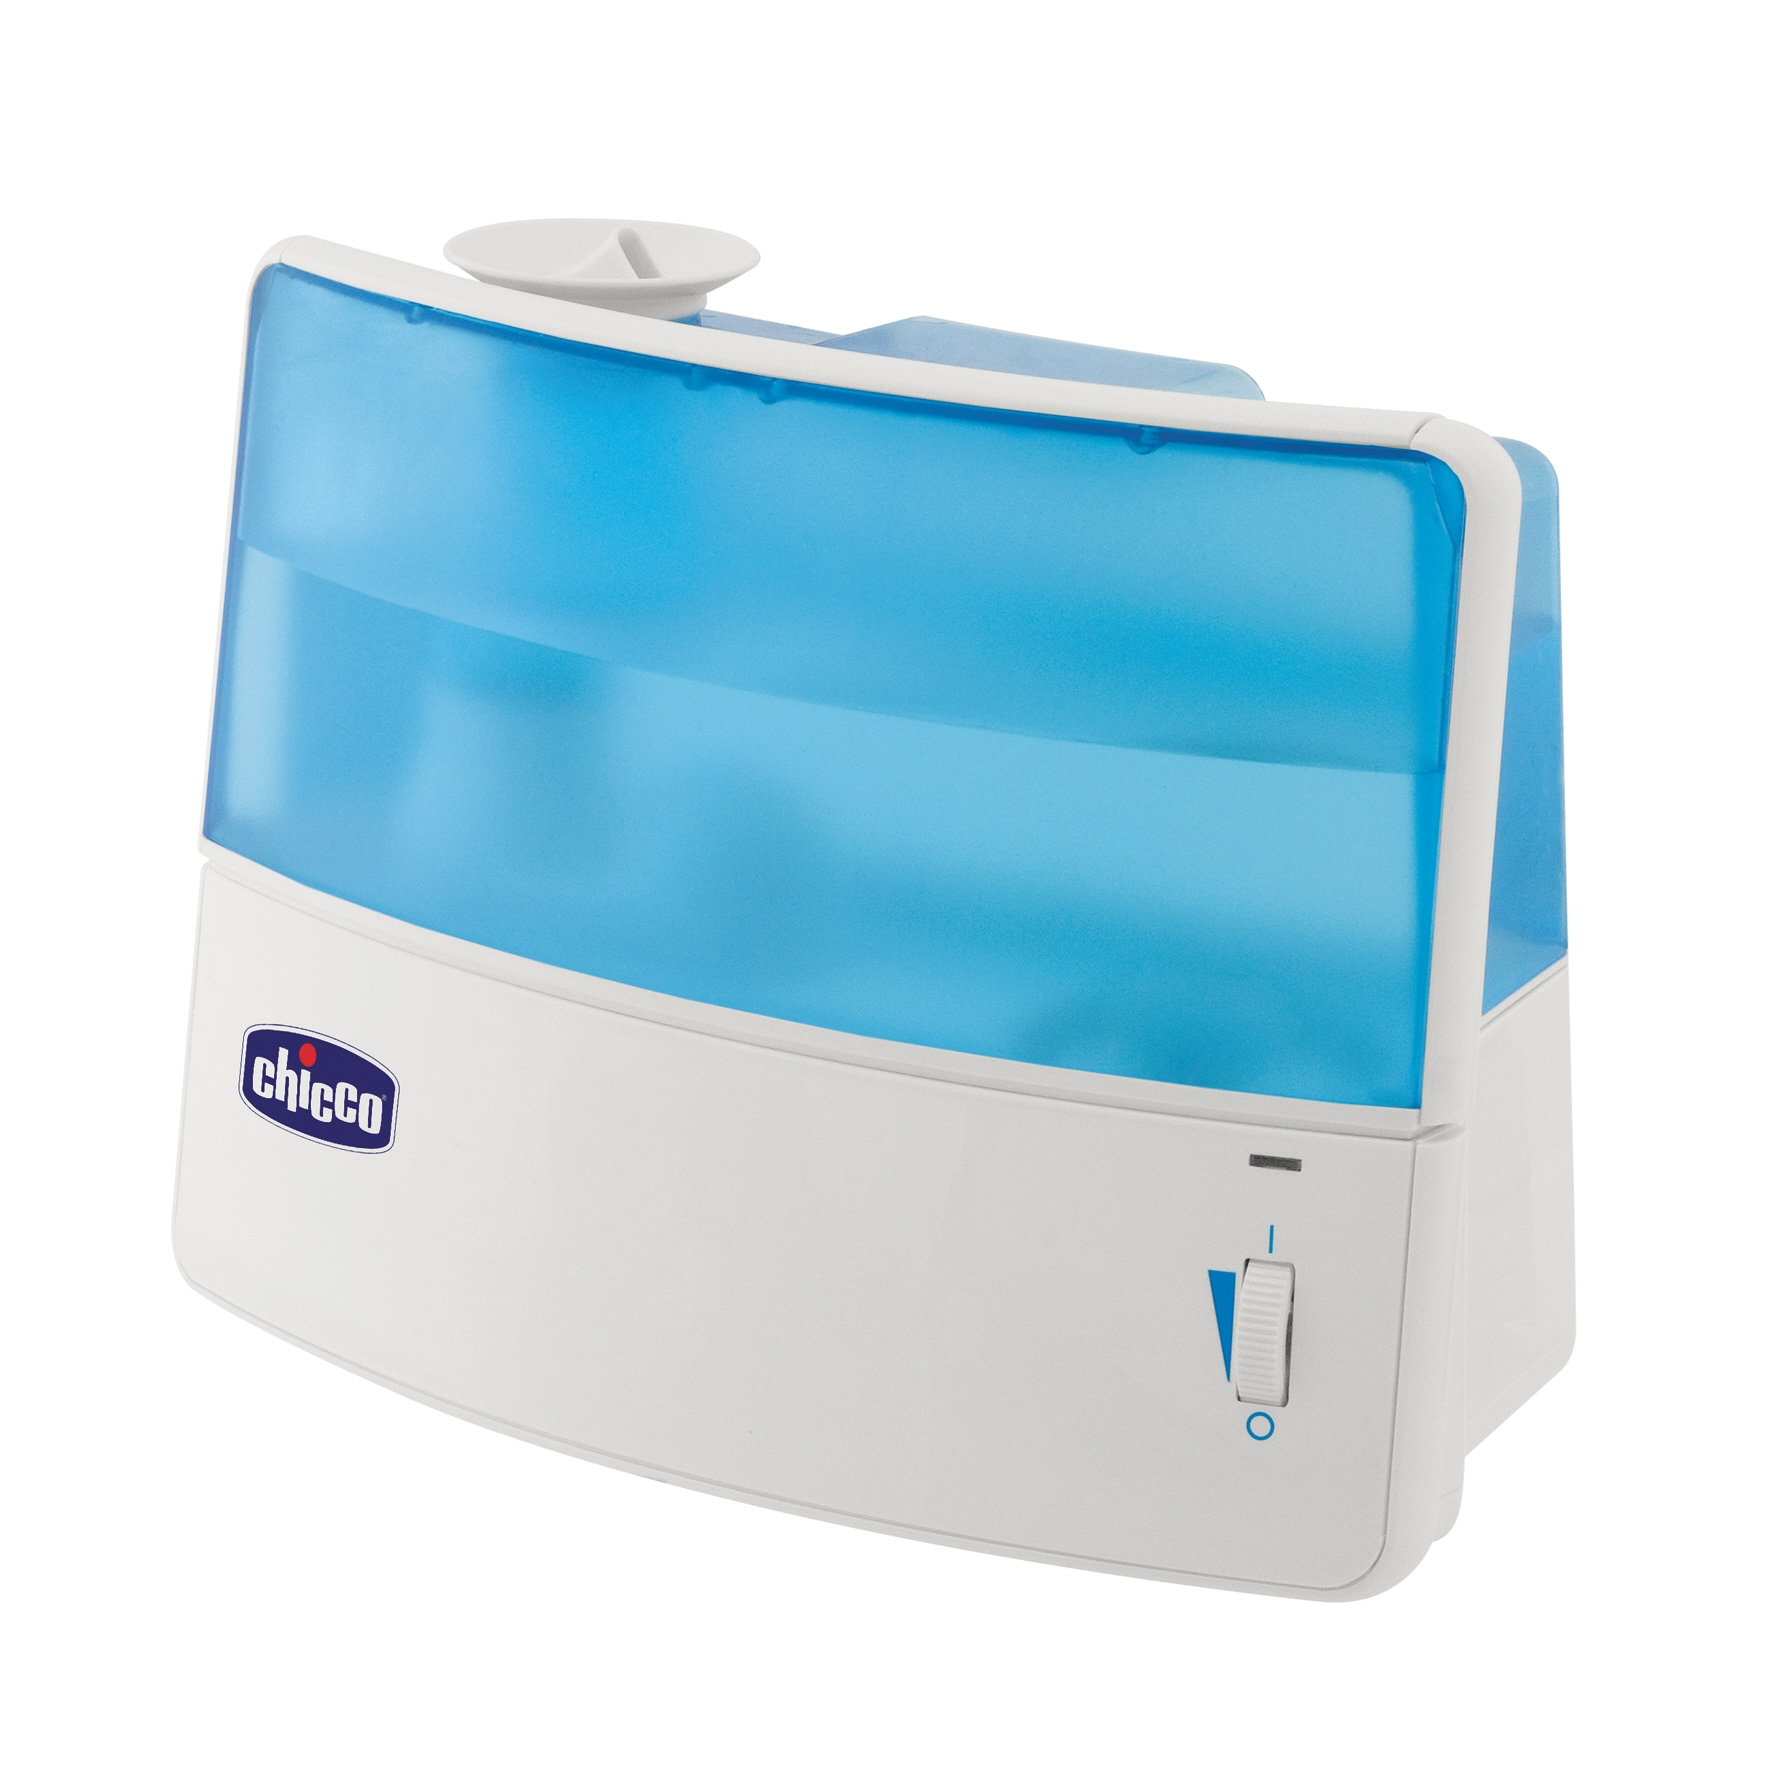 Chicco Humidifier Comfort Neb cold 2015 buy online at KIDSROOM.DE  #0A63A2